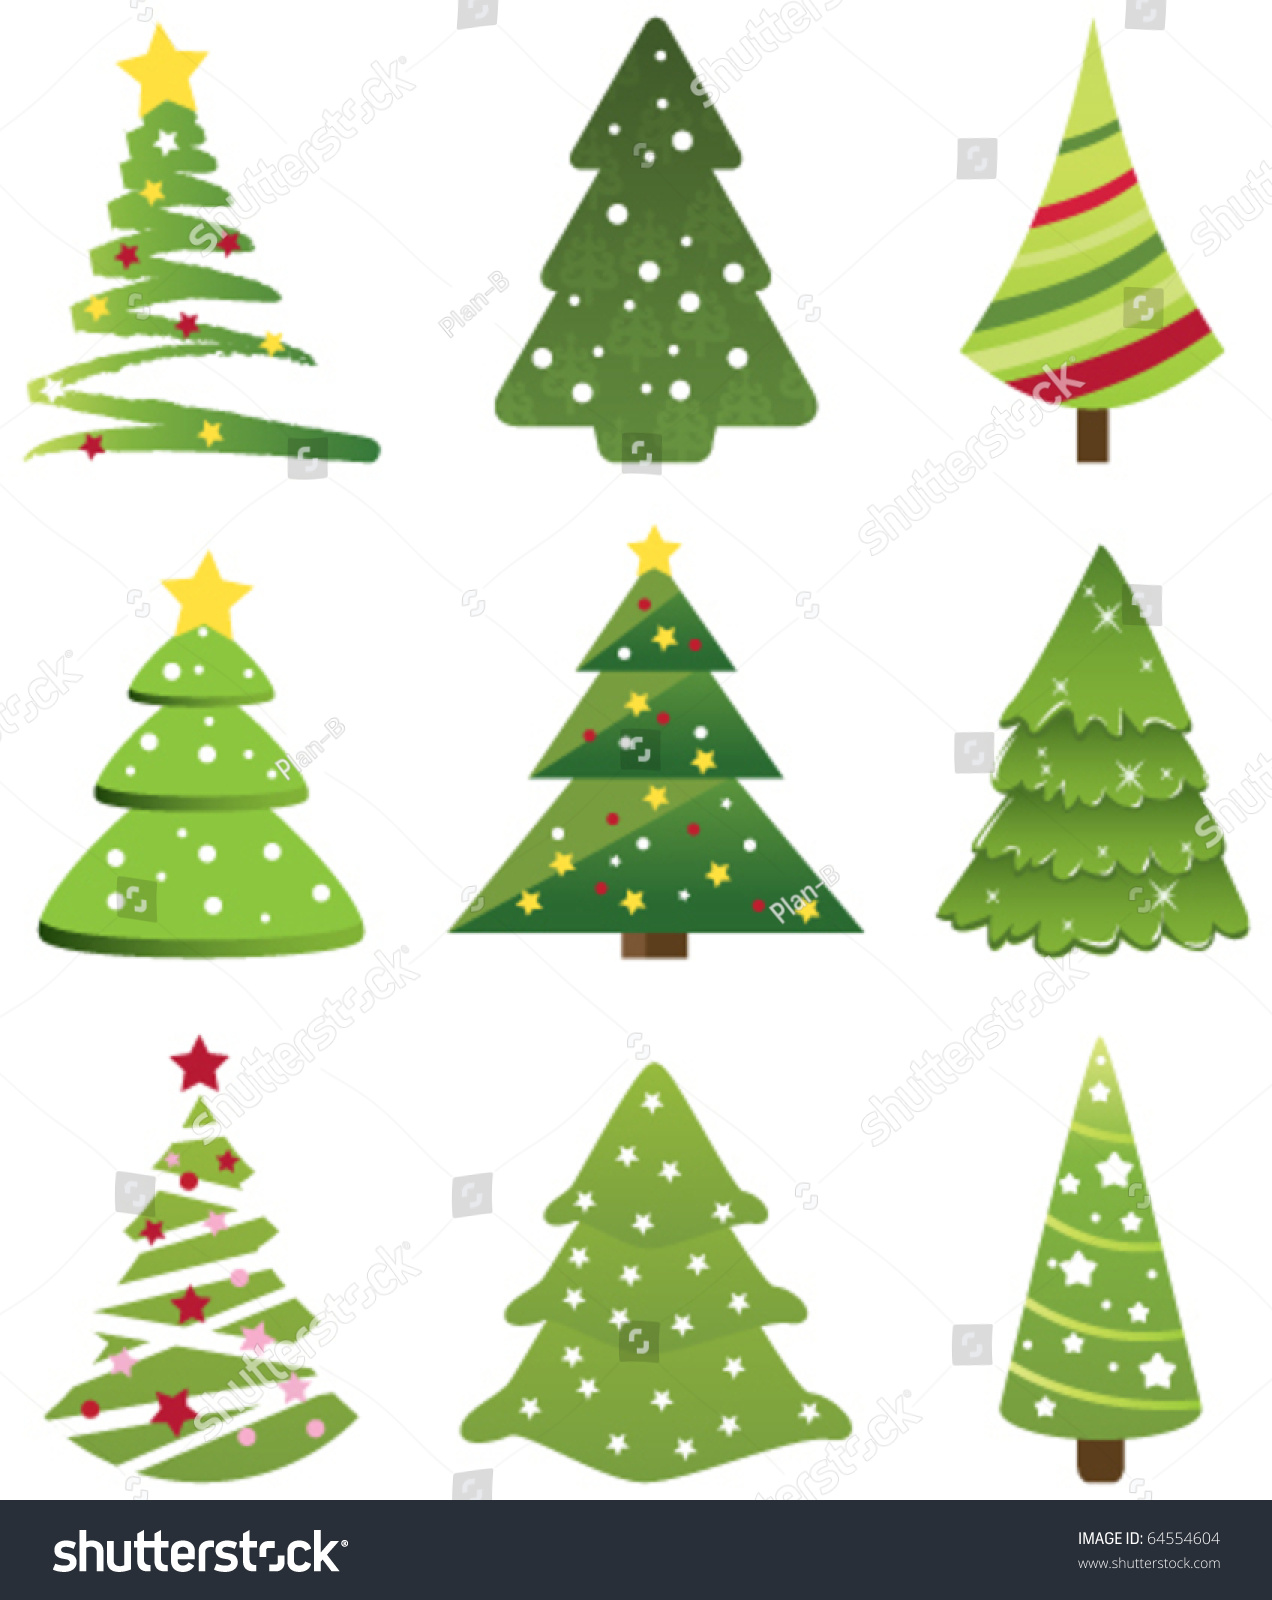 Christmas Tree Collection Gravesend : Christmas tree collection vector  shutterstock